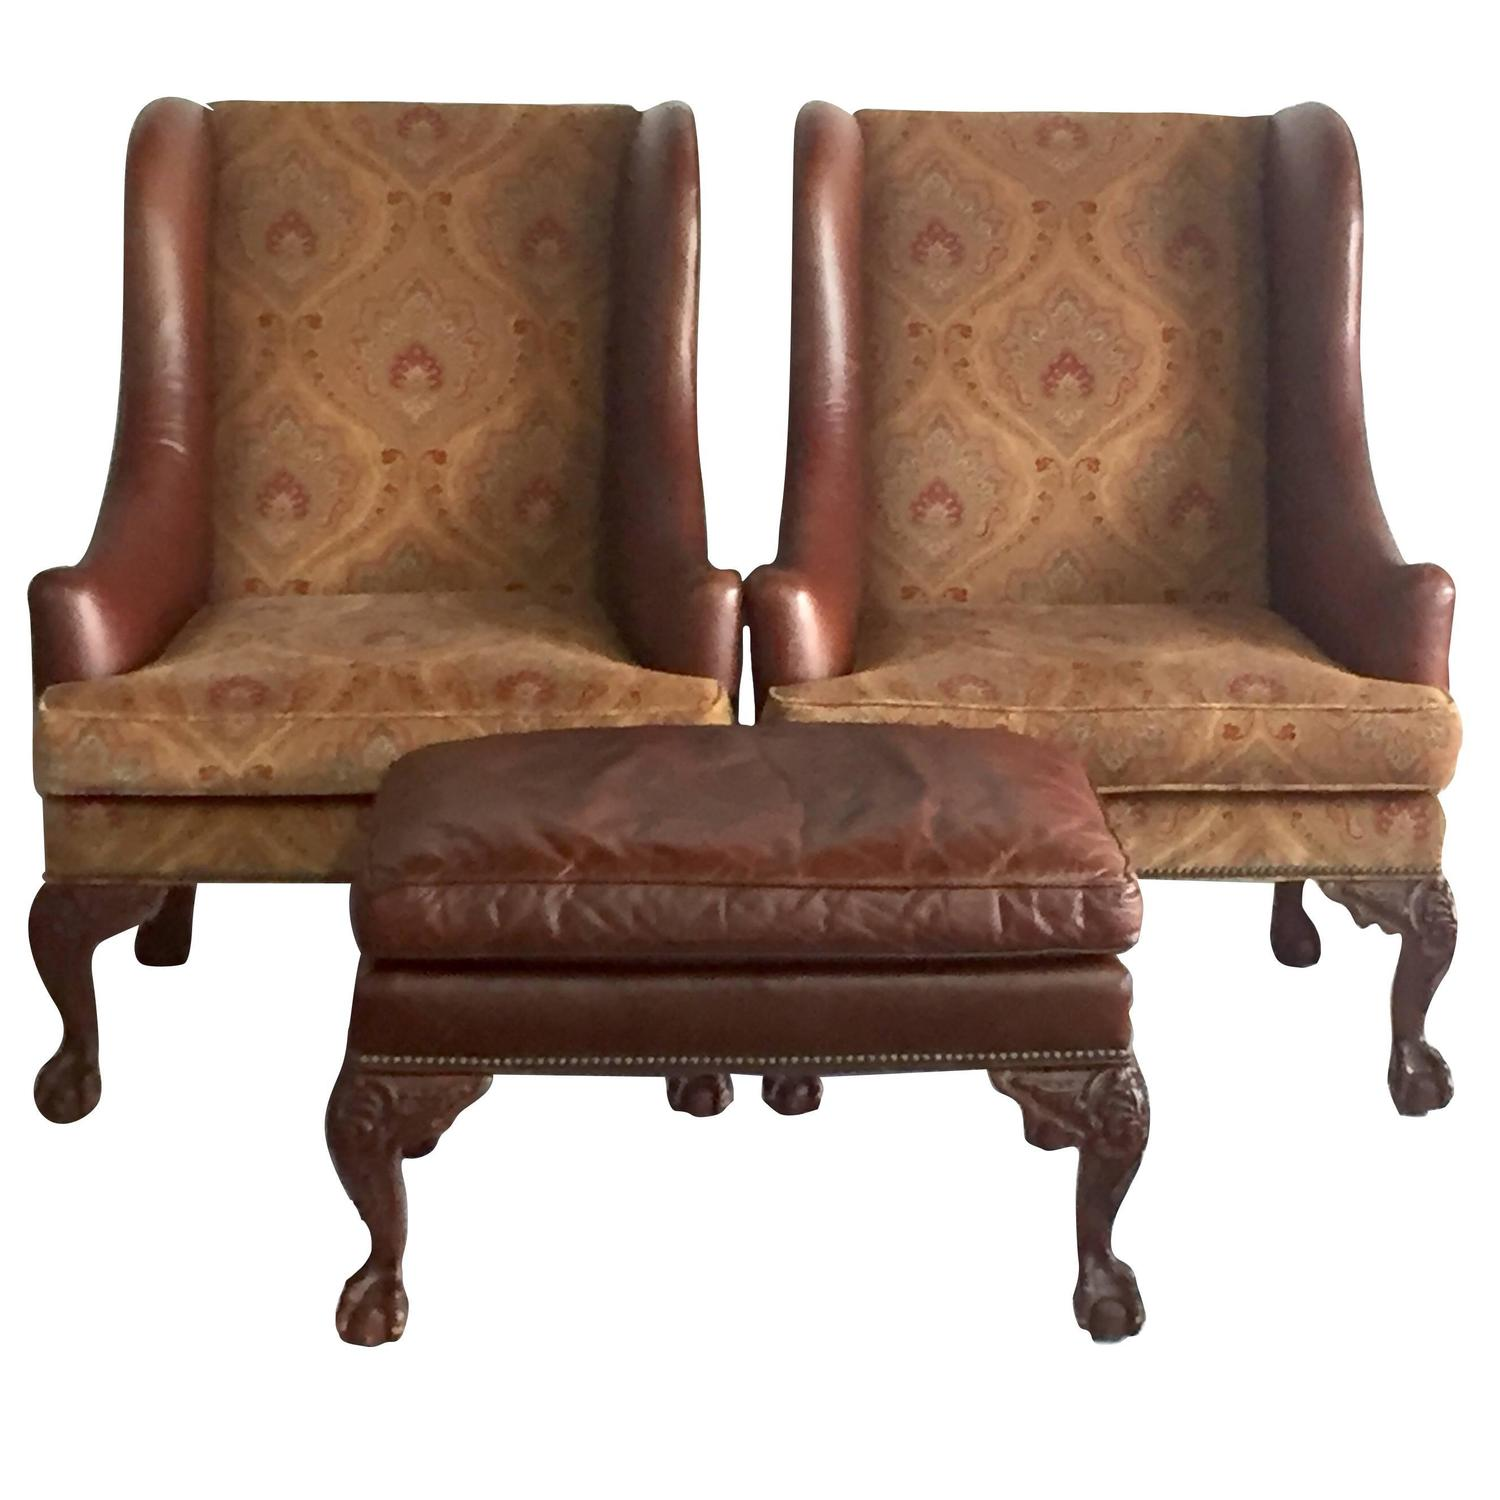 Henredon leather george ii period wing chairs and ottoman